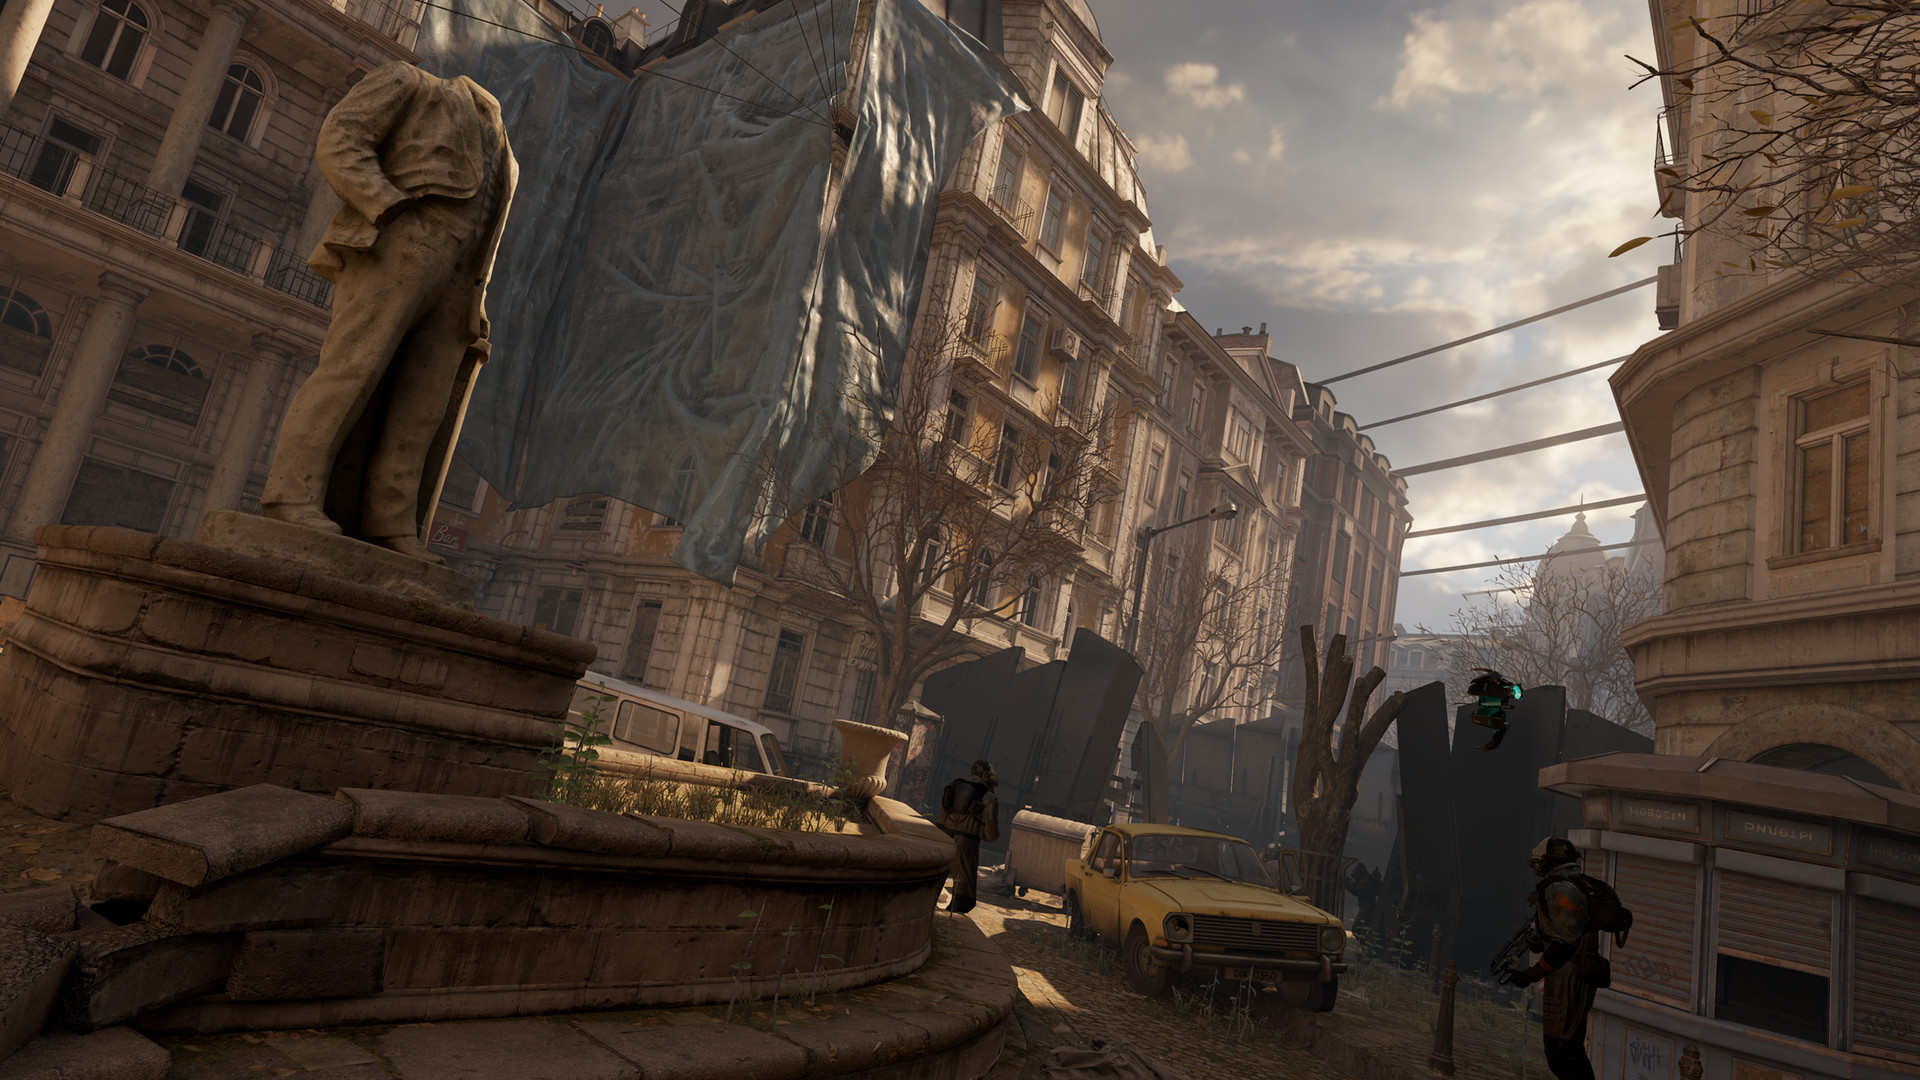 Half-Life: Alyx is set in between the events of the first two games in the franchise, in City 17